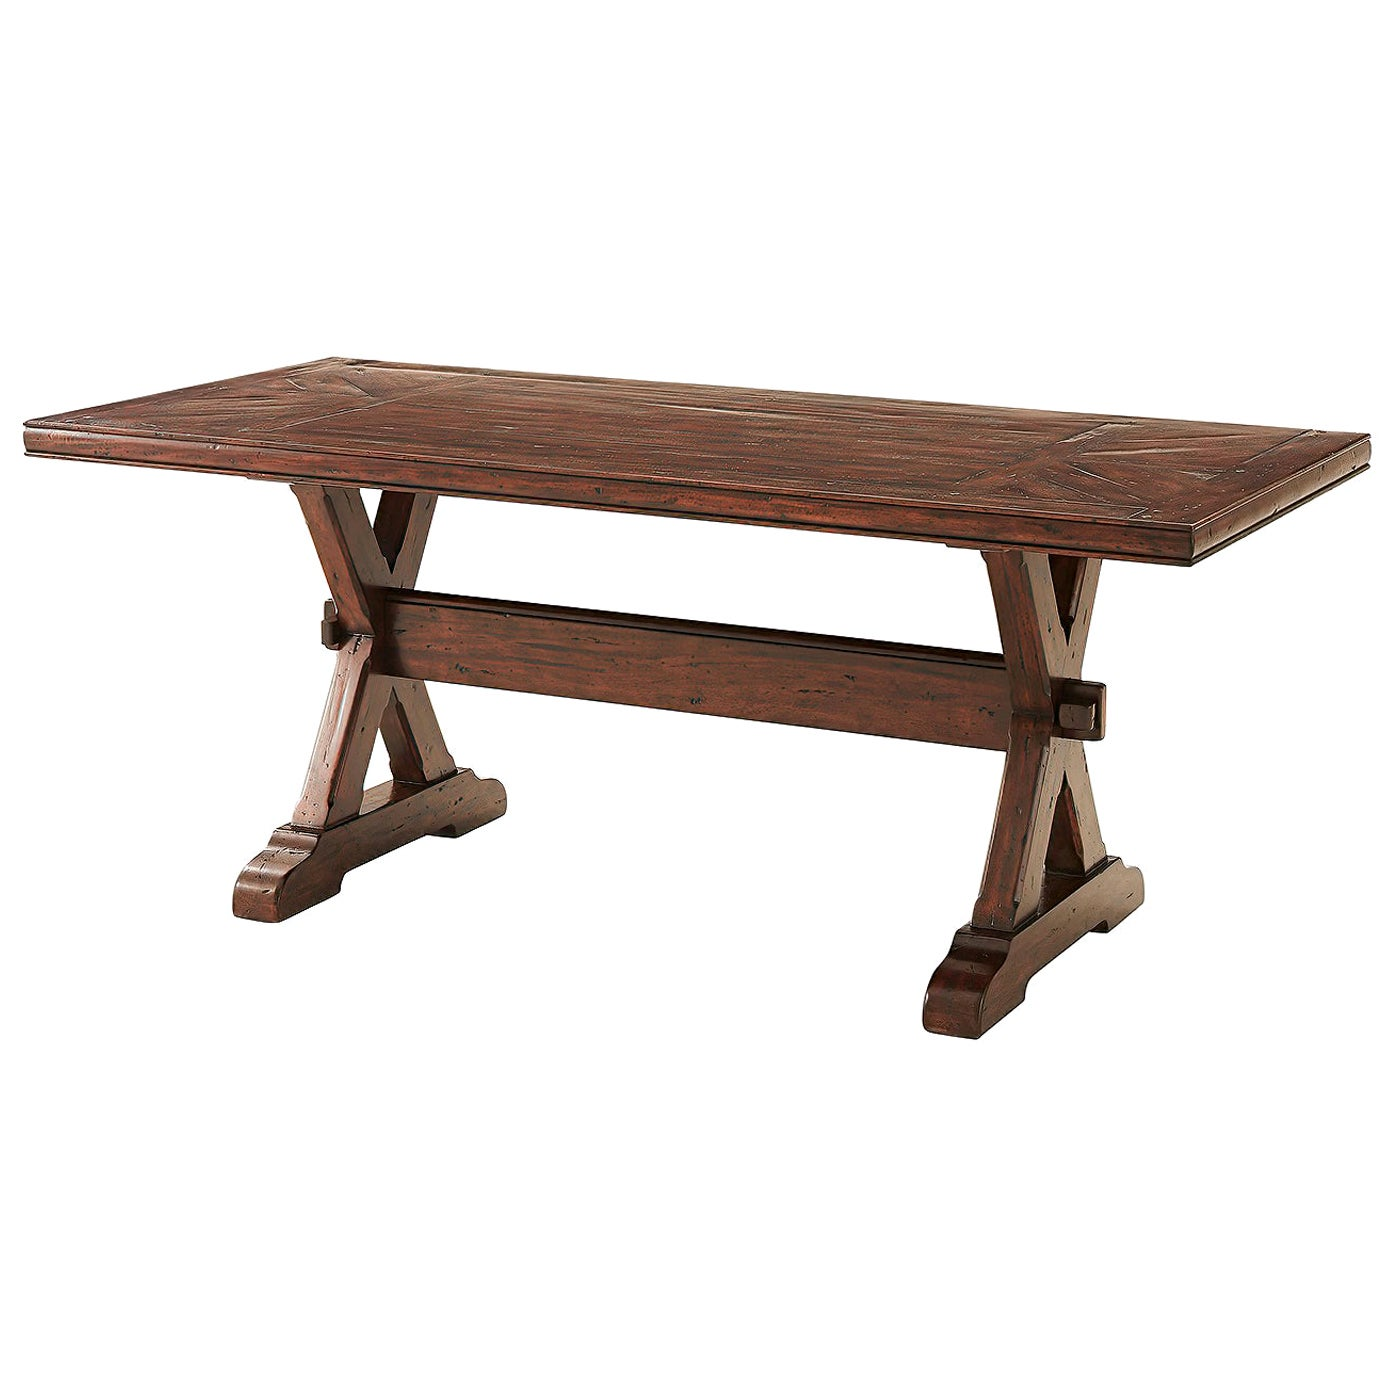 Country Antiqued Wood Refectory Dining Table